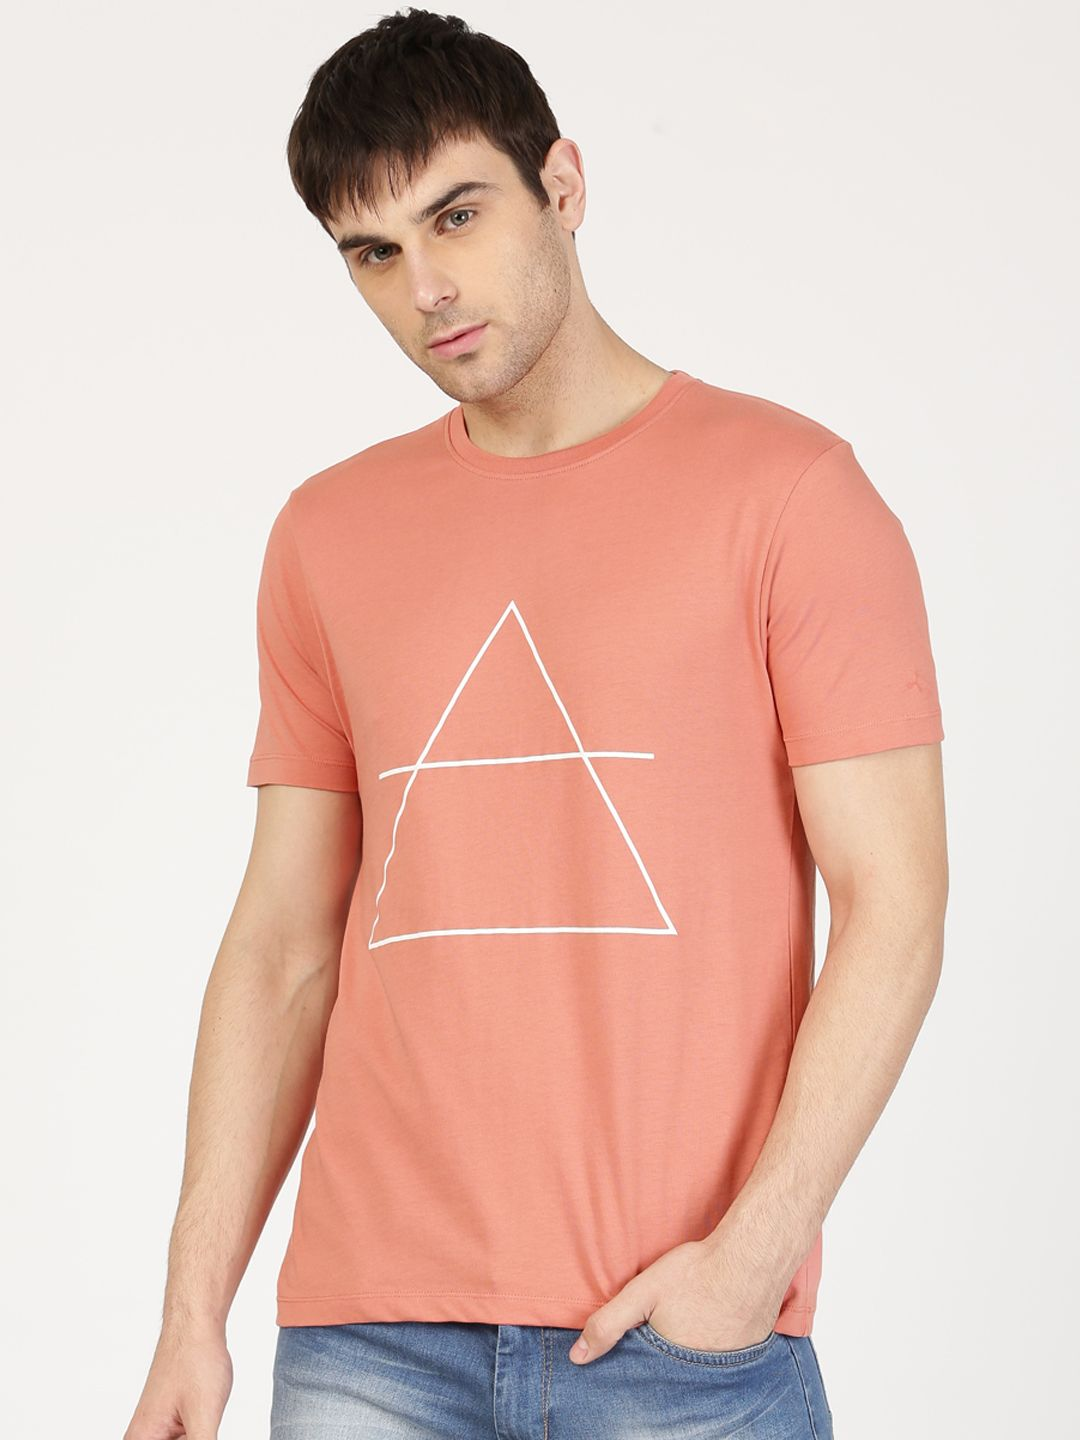 854d30a7 ether Men Peach-Coloured Printed Round Neck T-shirt - | 349 | Men's ...